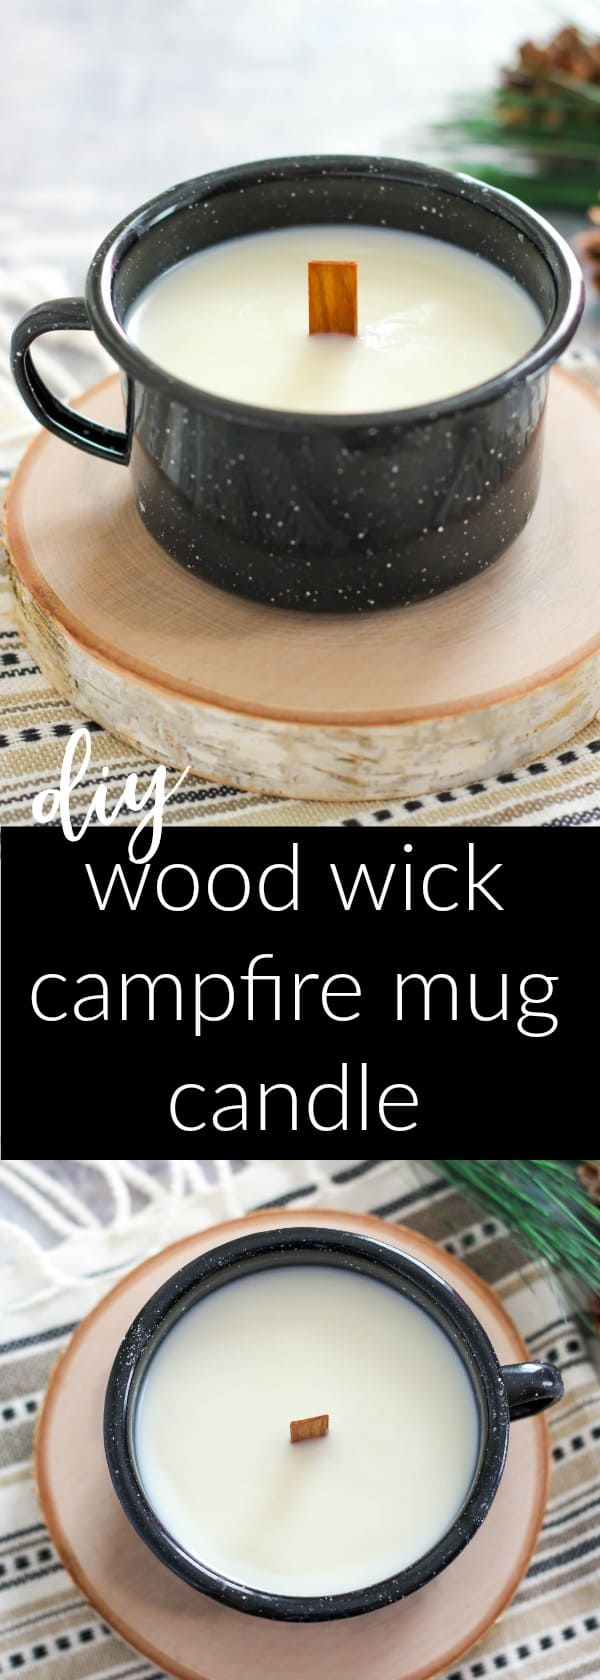 DIY Wood Wick Campfire Mug Candle is a natural soy wax candle perfumed with an autumn leaves fragrance oil.  Enjoy the smell and crackling of the wood wick.